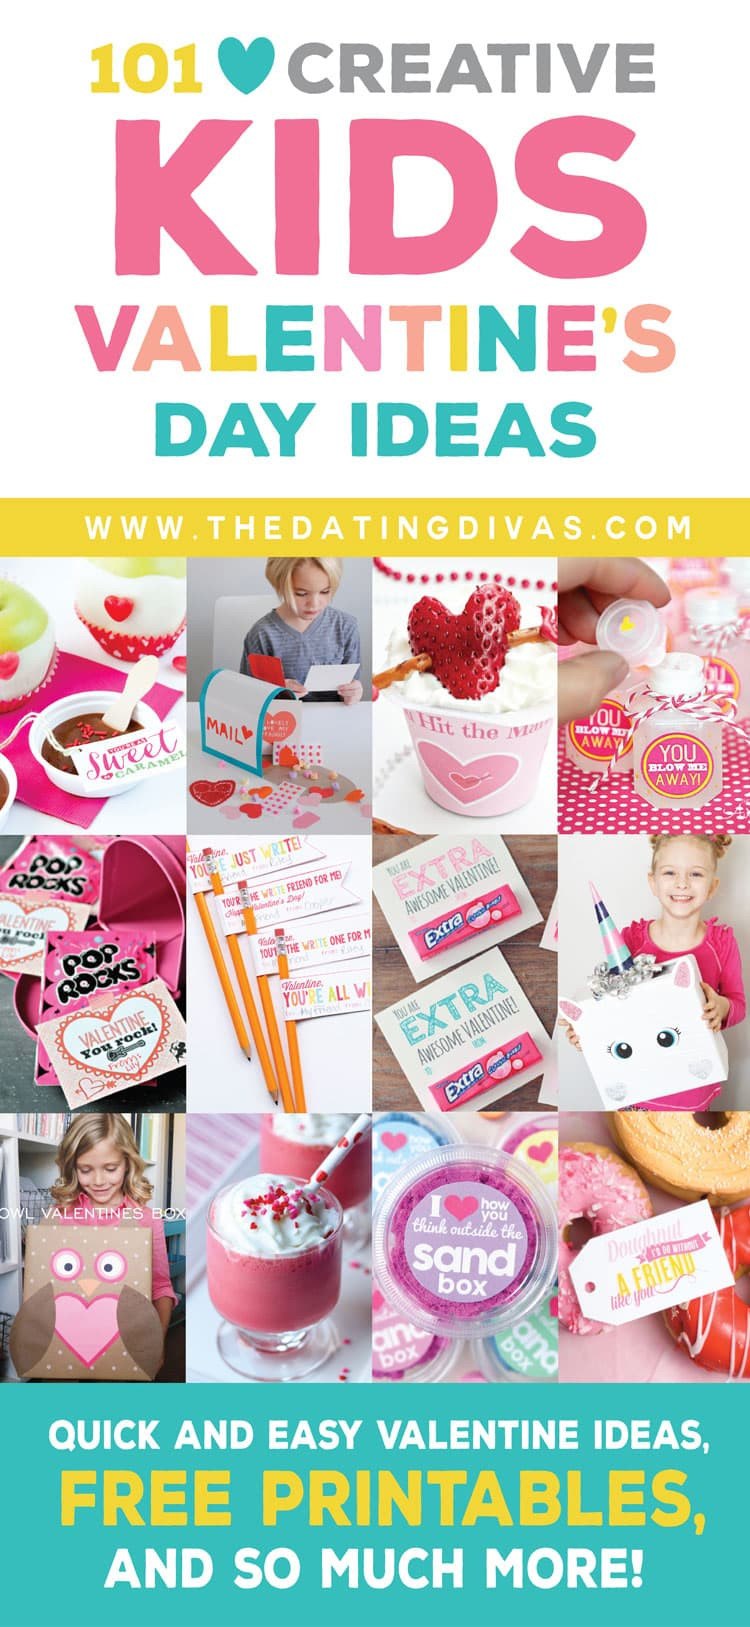 Valentine'S Day Gift Ideas For Kids  Kids Valentine s Day Ideas From The Dating Divas